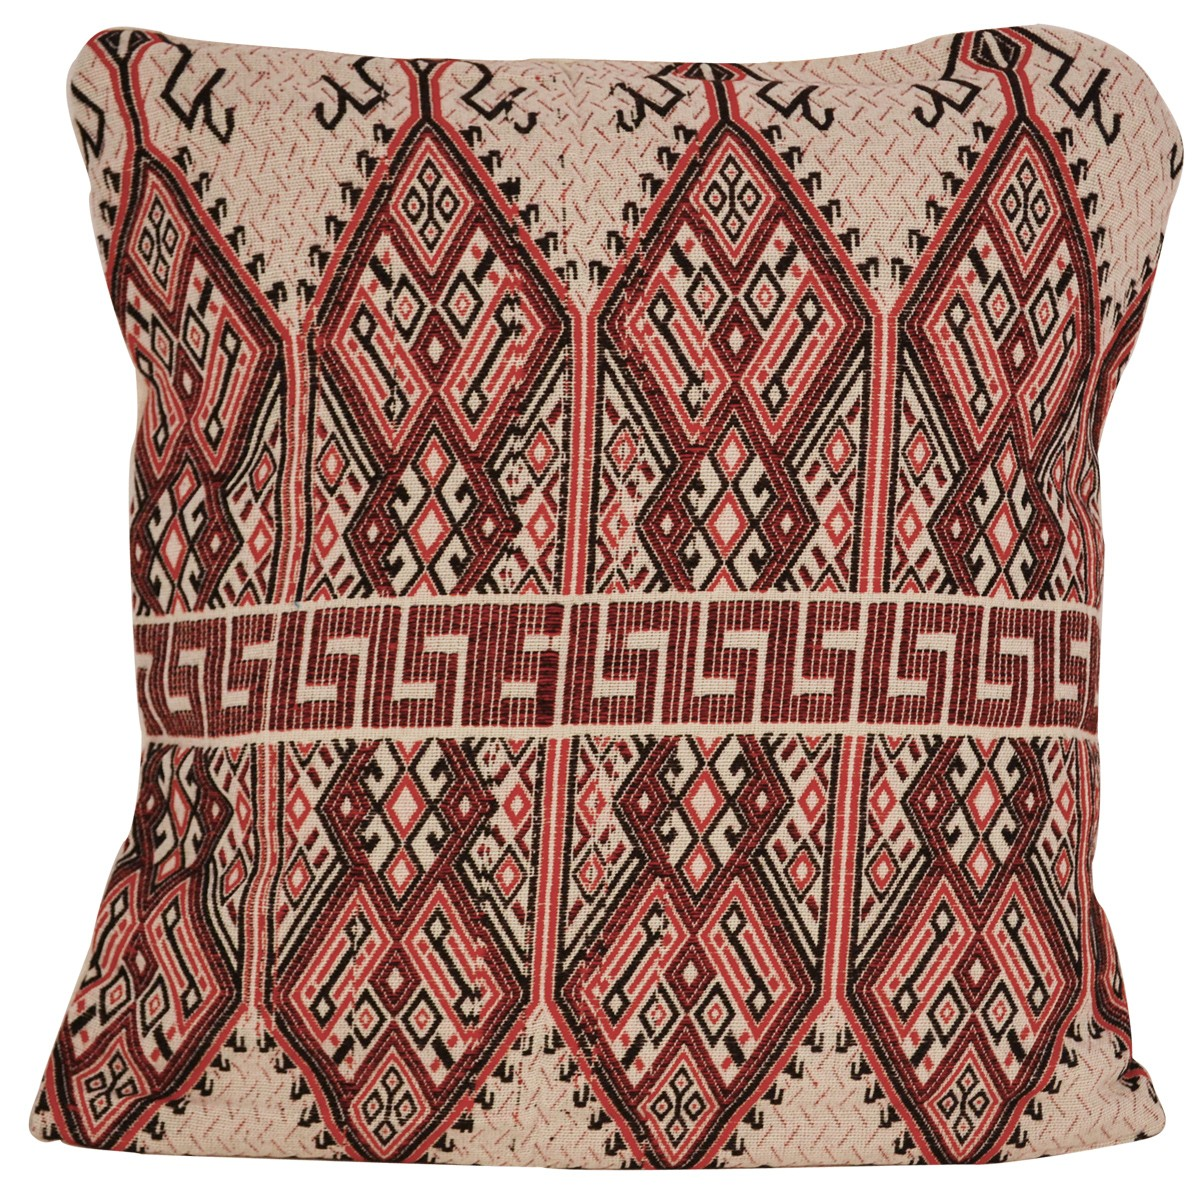 Praesos, Traditional Jacquard Cushion Cover